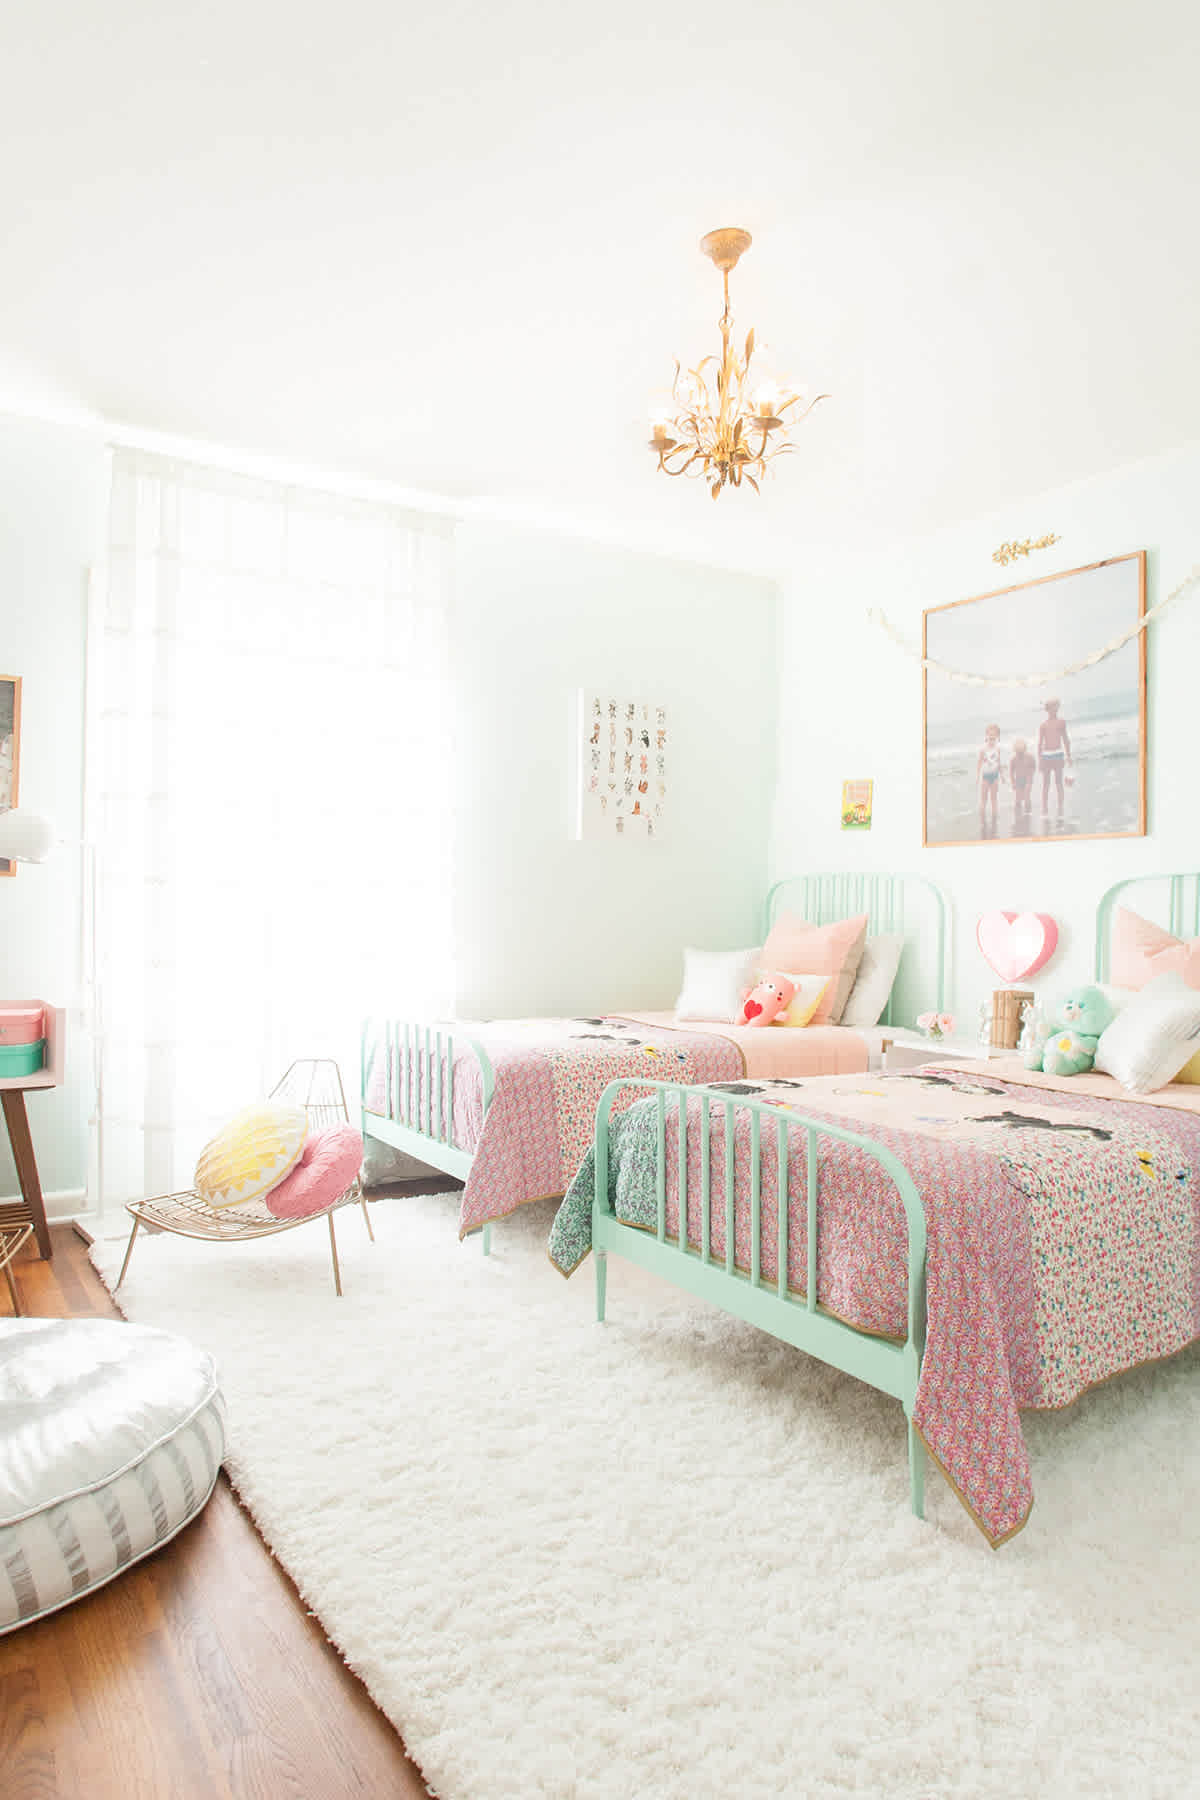 d Room Inspiration With The Land Nod Lay Baby Lay